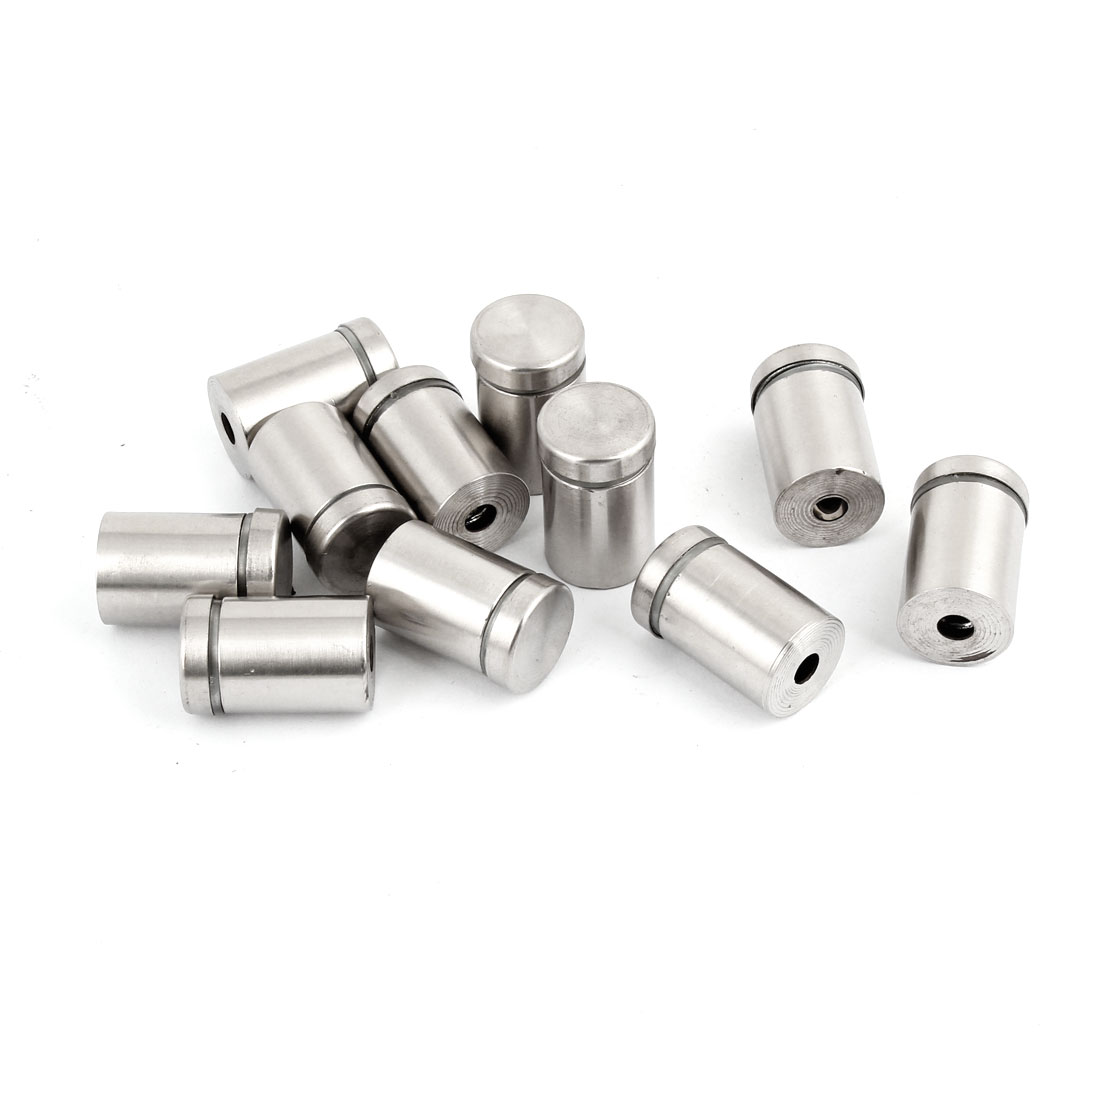 12 Pcs 16mm Dia 25mm Long Round Stainless Steel Standoff for Glass Hardware